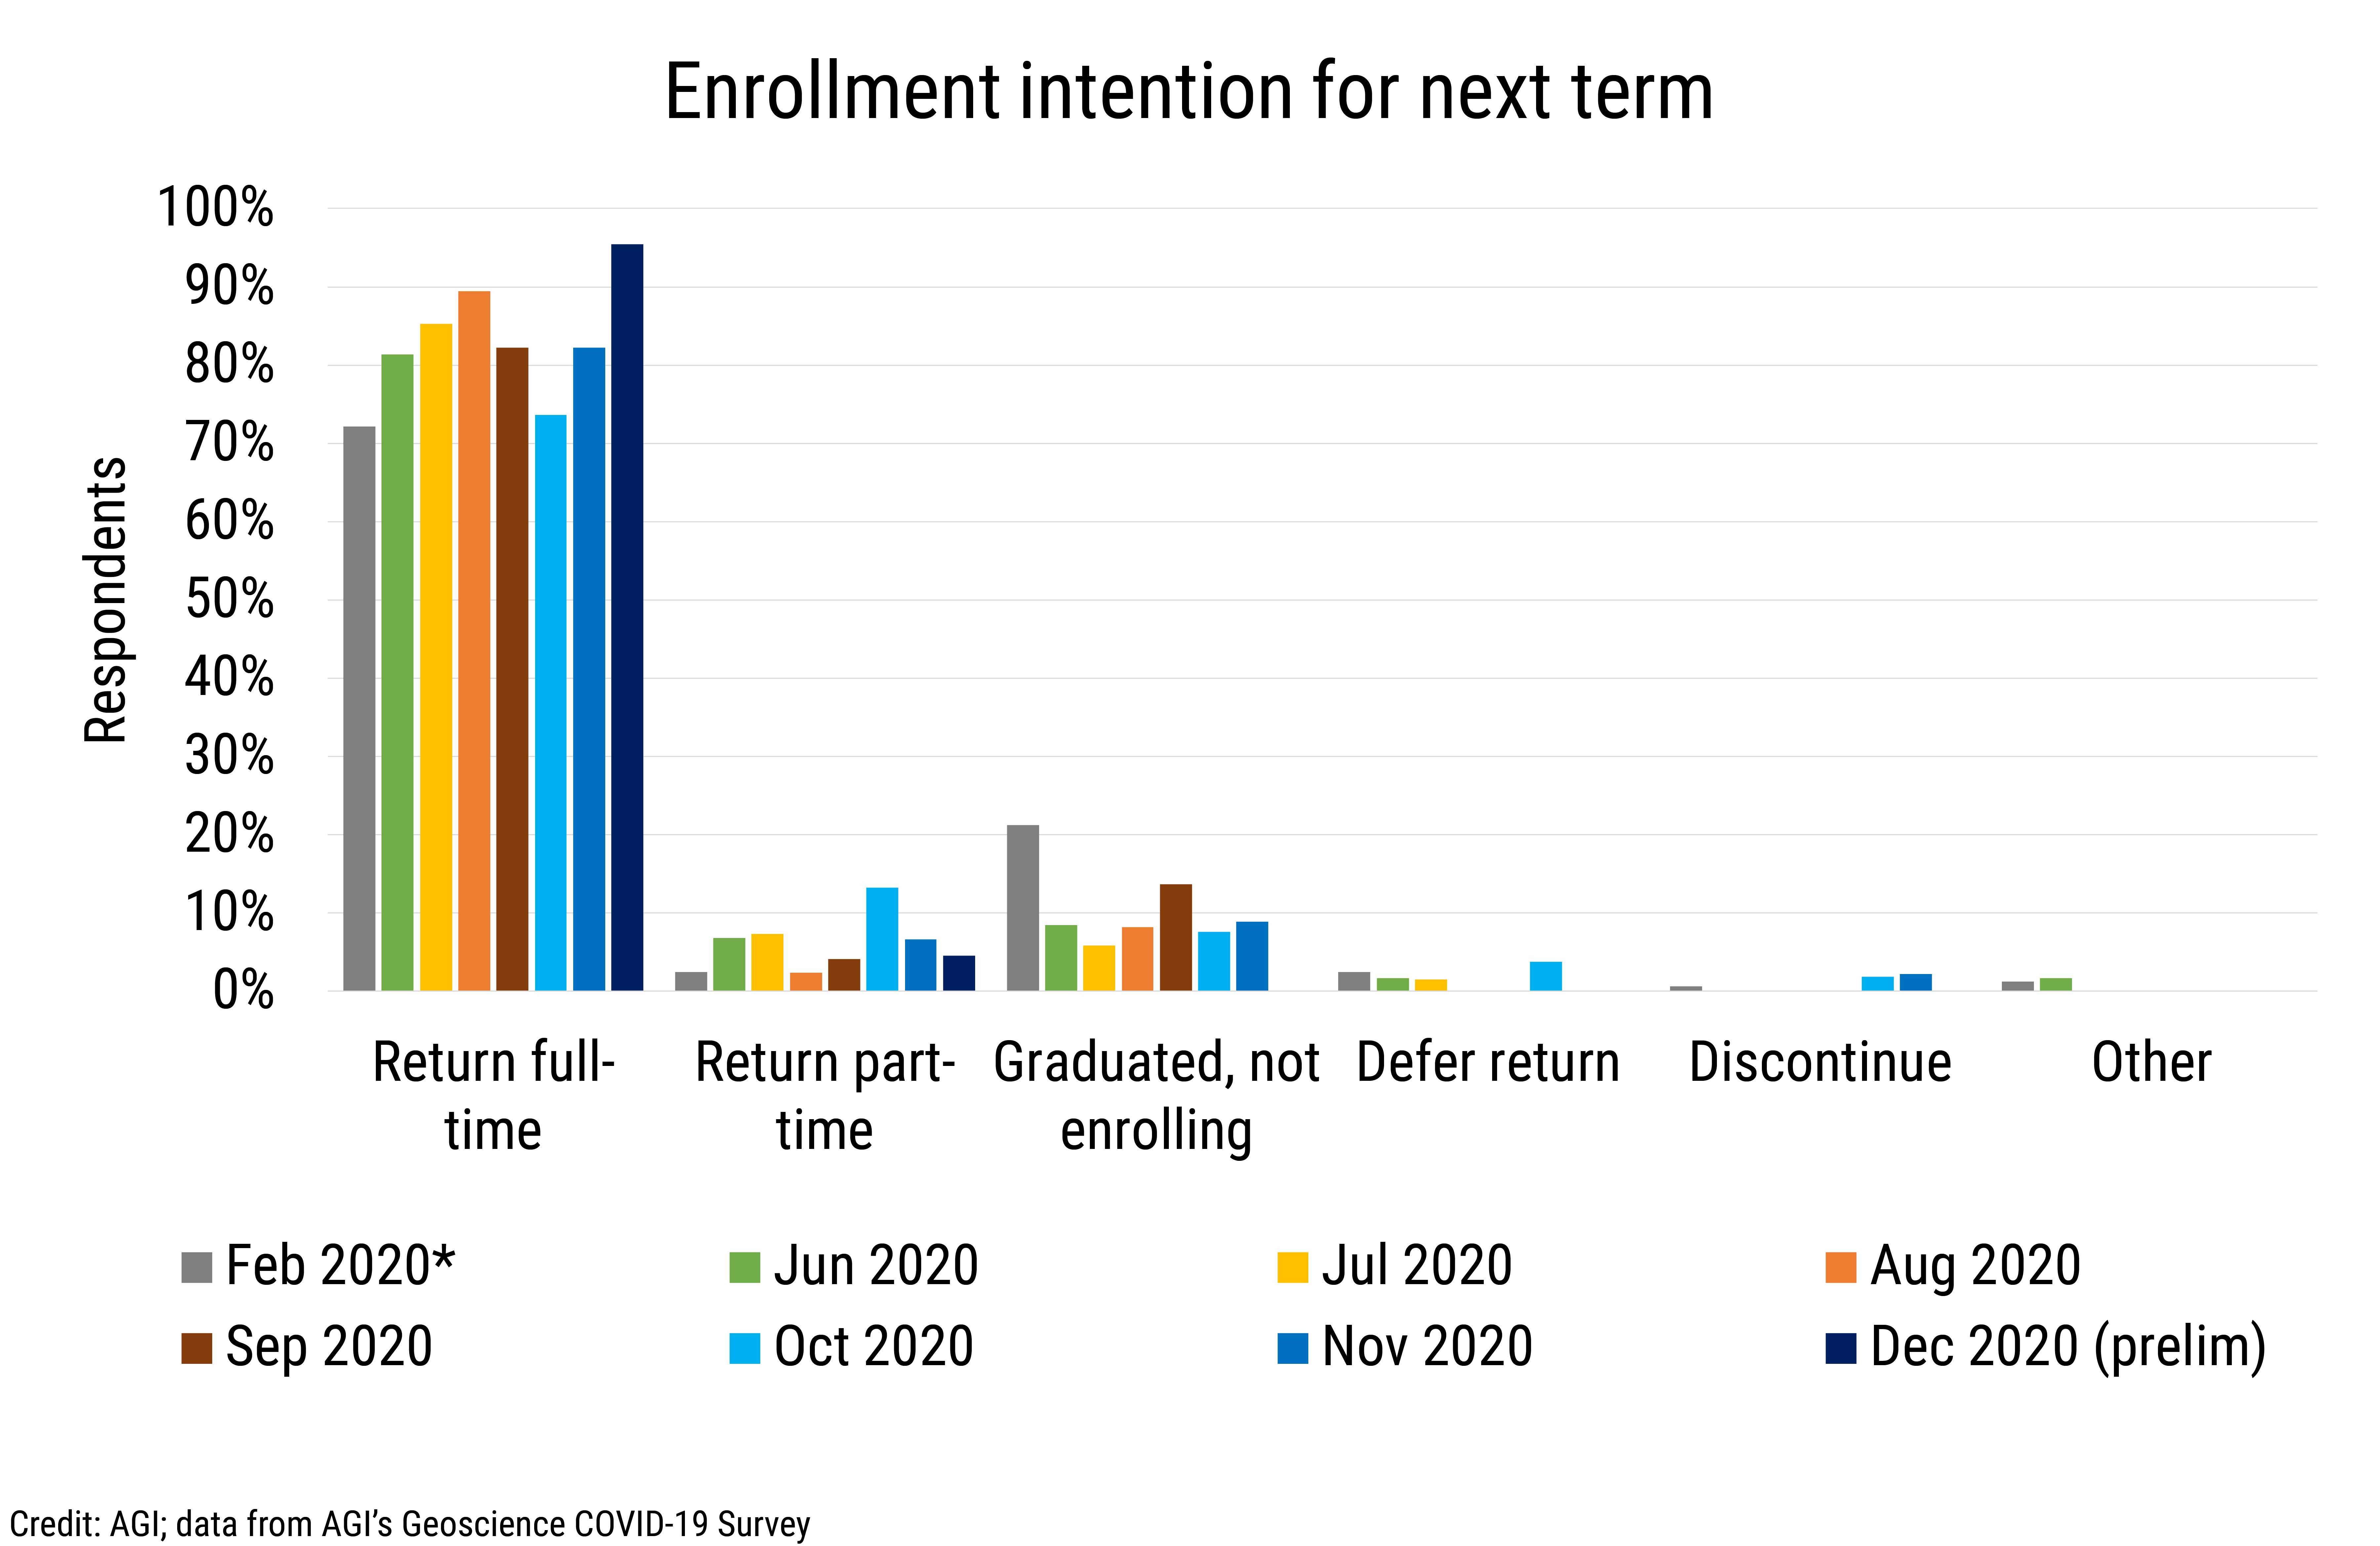 DB_2020-032 chart 03: Enrollment intention for next term (Credit: AGI; data from AGI's Geoscience COVID-19 Survey)